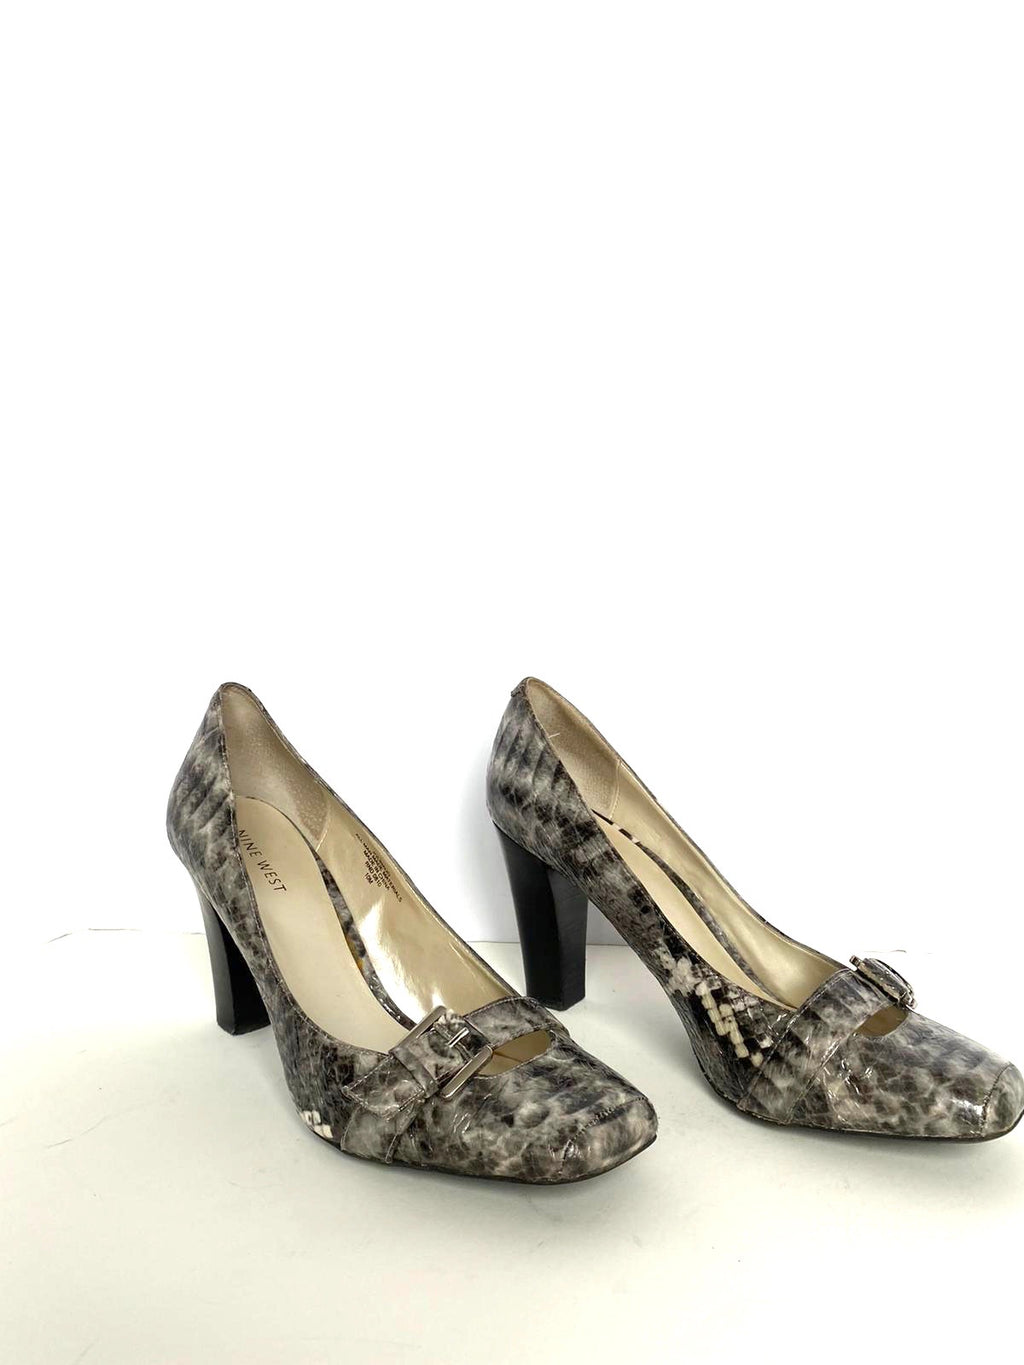 Nine West Grey Snake Embossed Pump Size 10